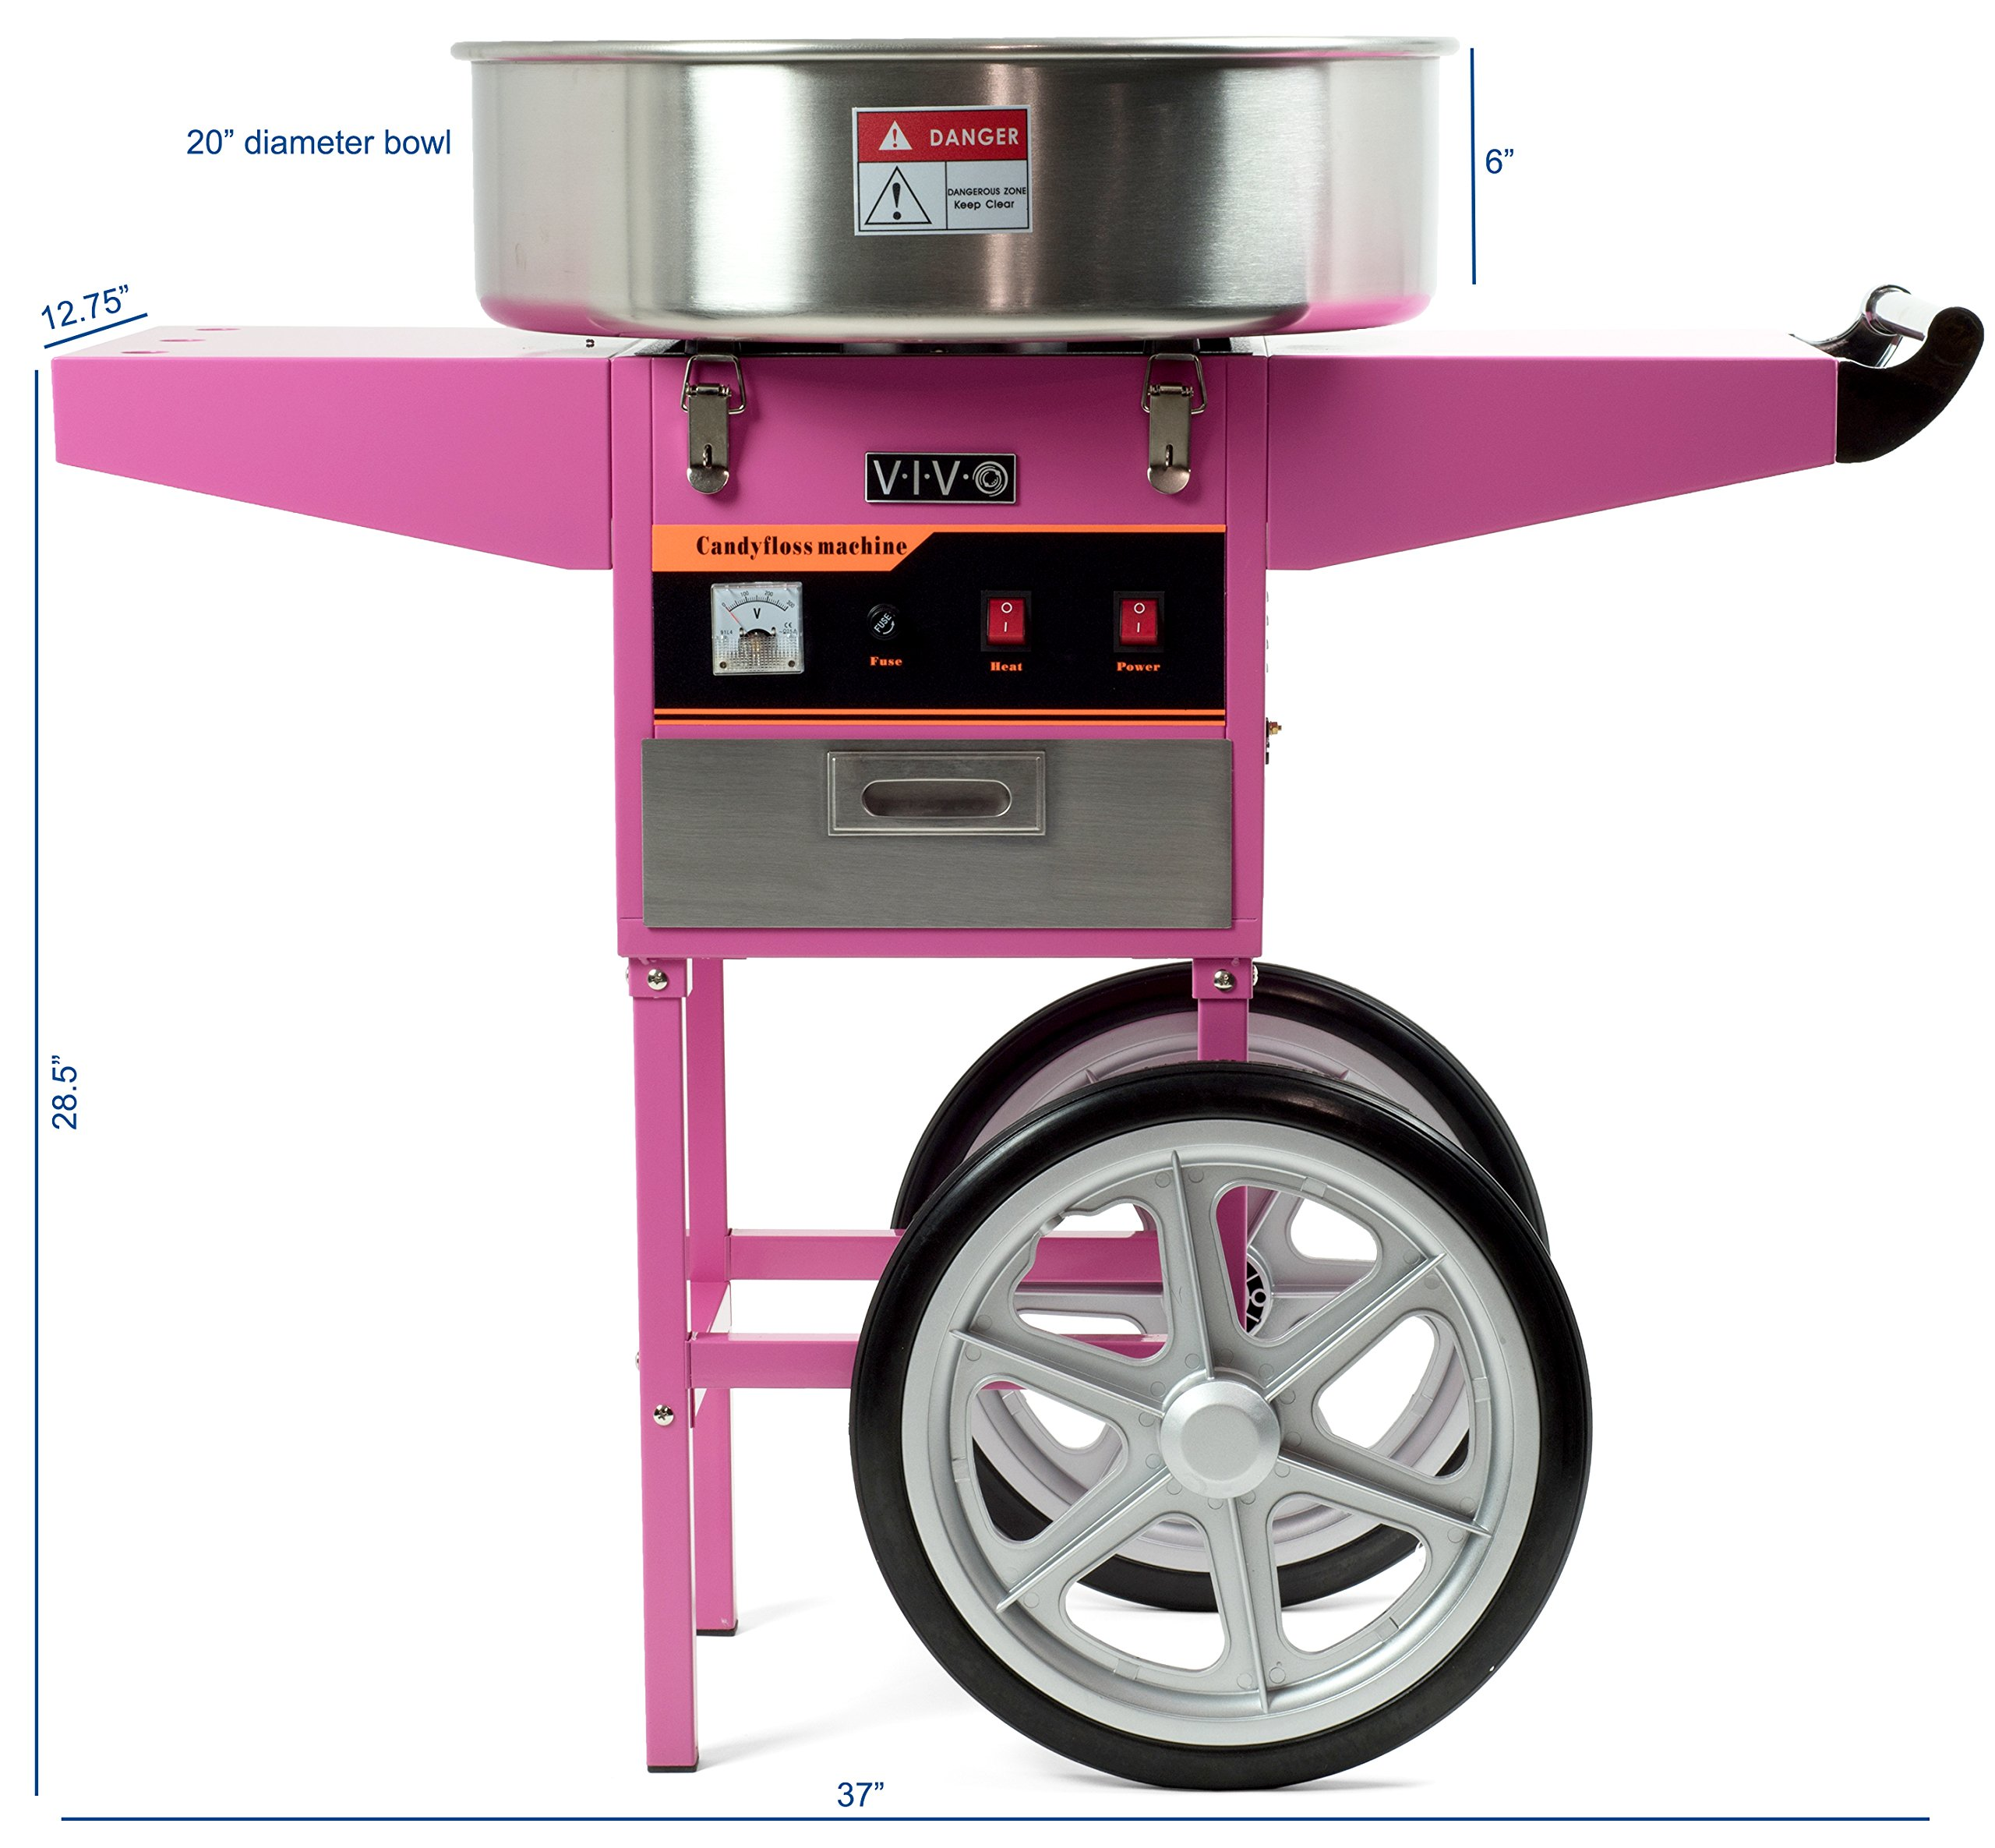 Electric Commercial Cotton Candy Machine / Candy Floss Maker Pink Cart Stand VIVO (CANDY-V002) by VIVO (Image #2)